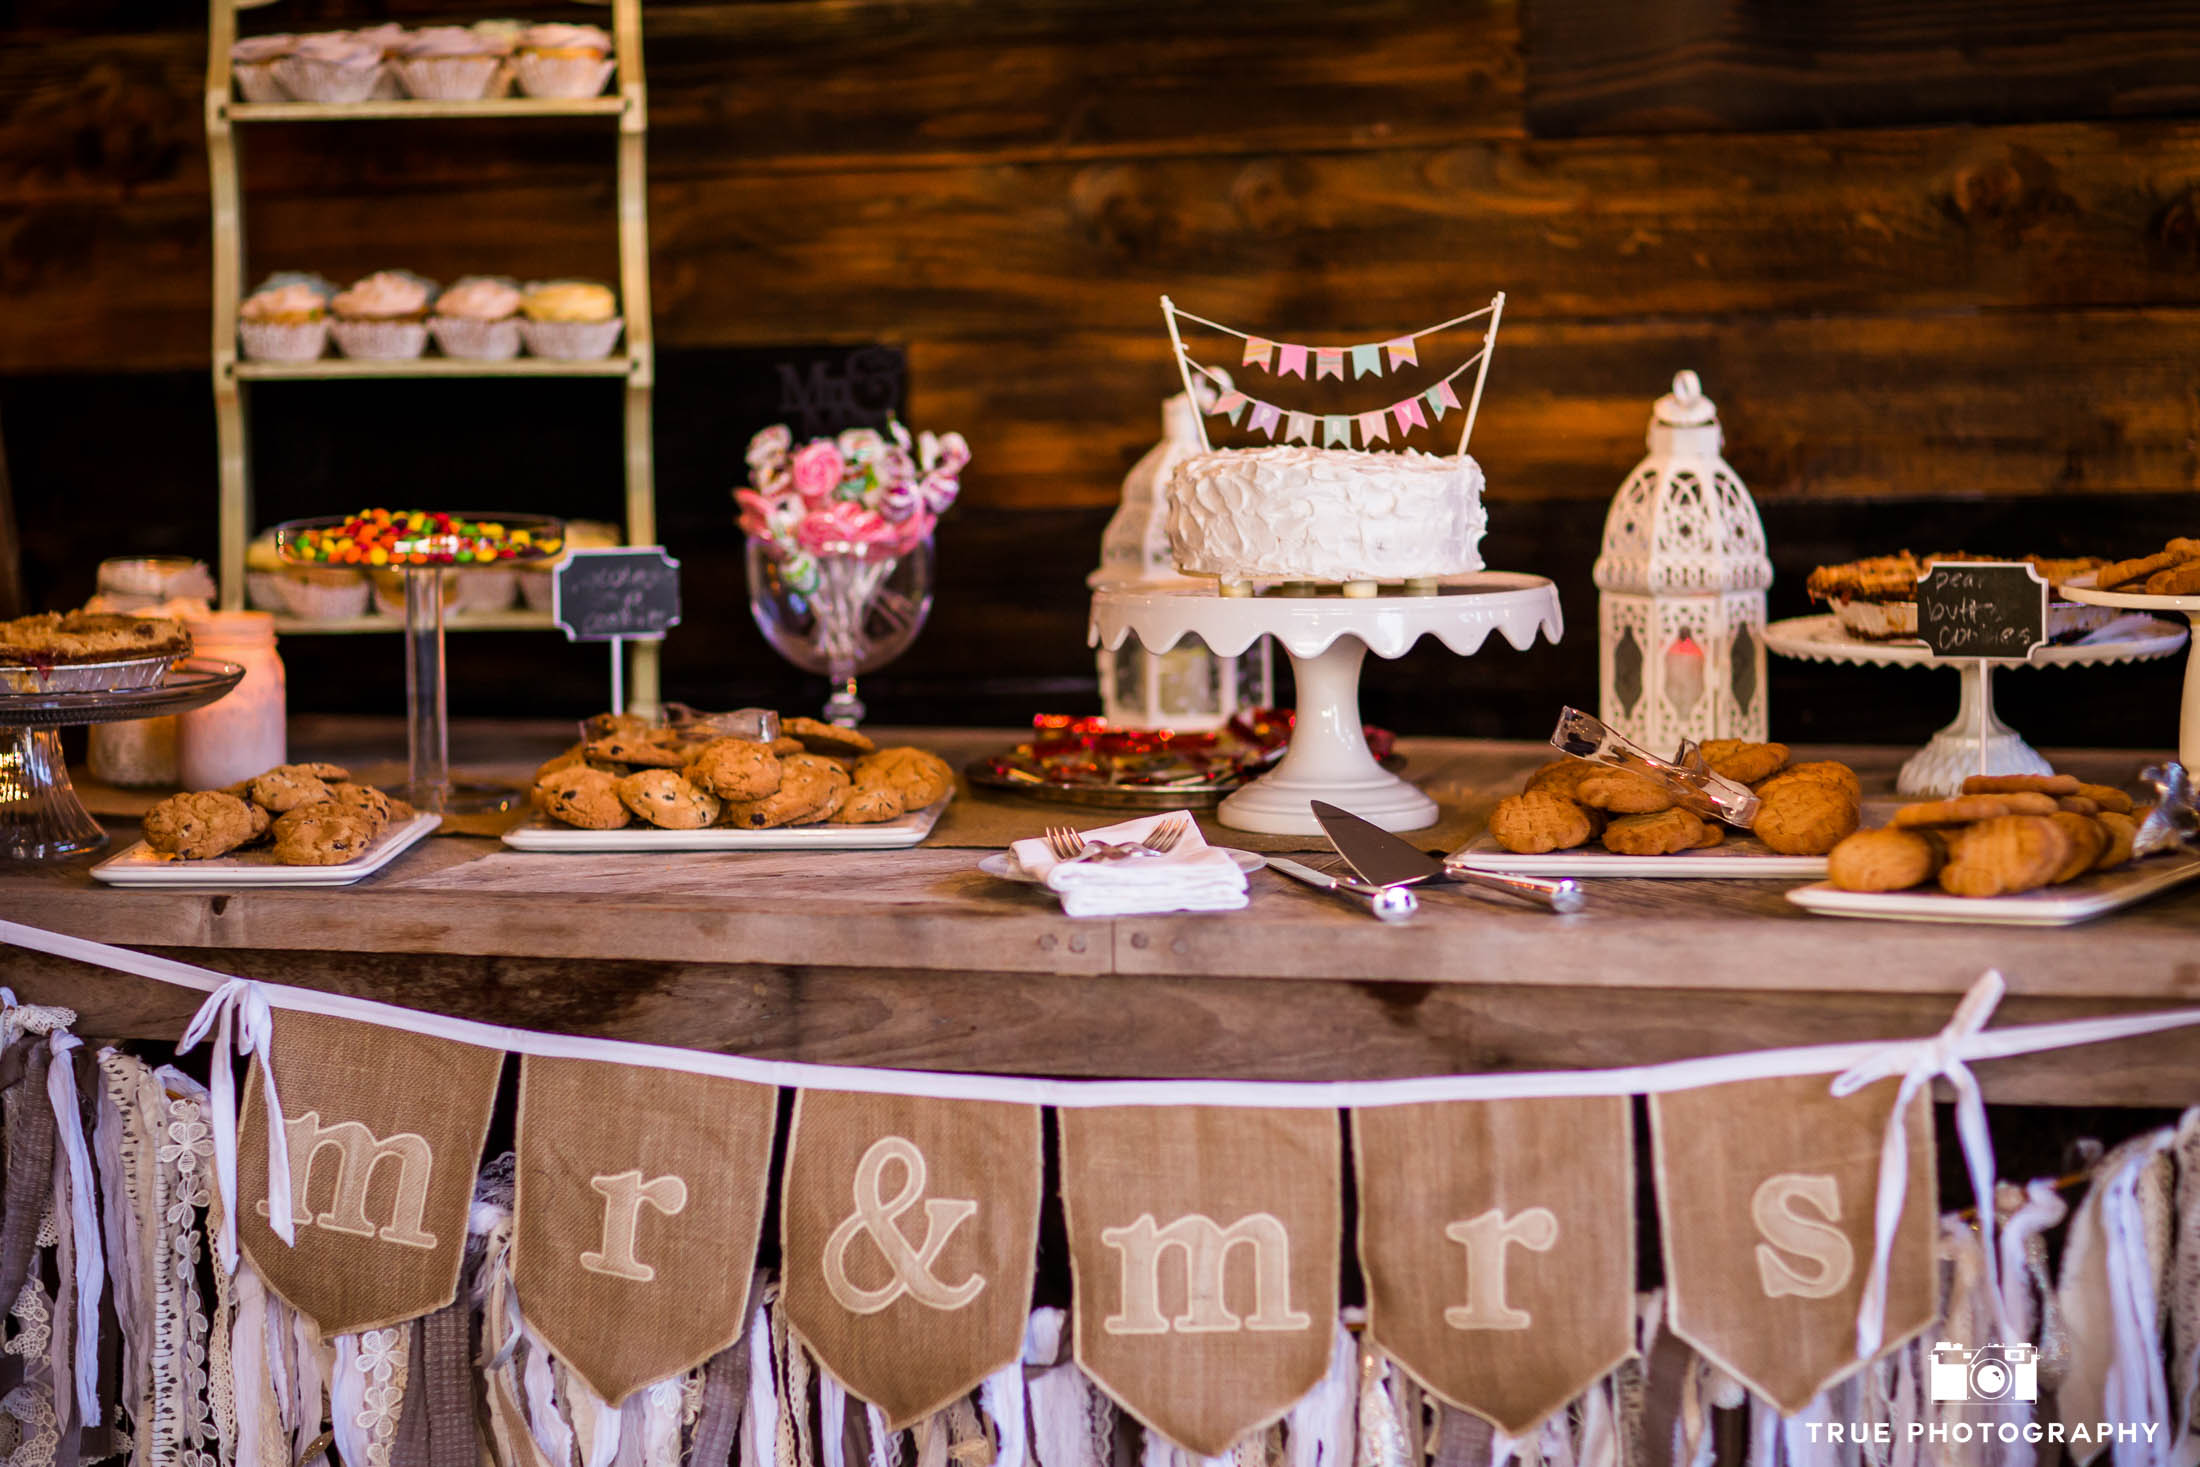 Dessert table with wedding cake, cookies and candy during rustic wedding reception